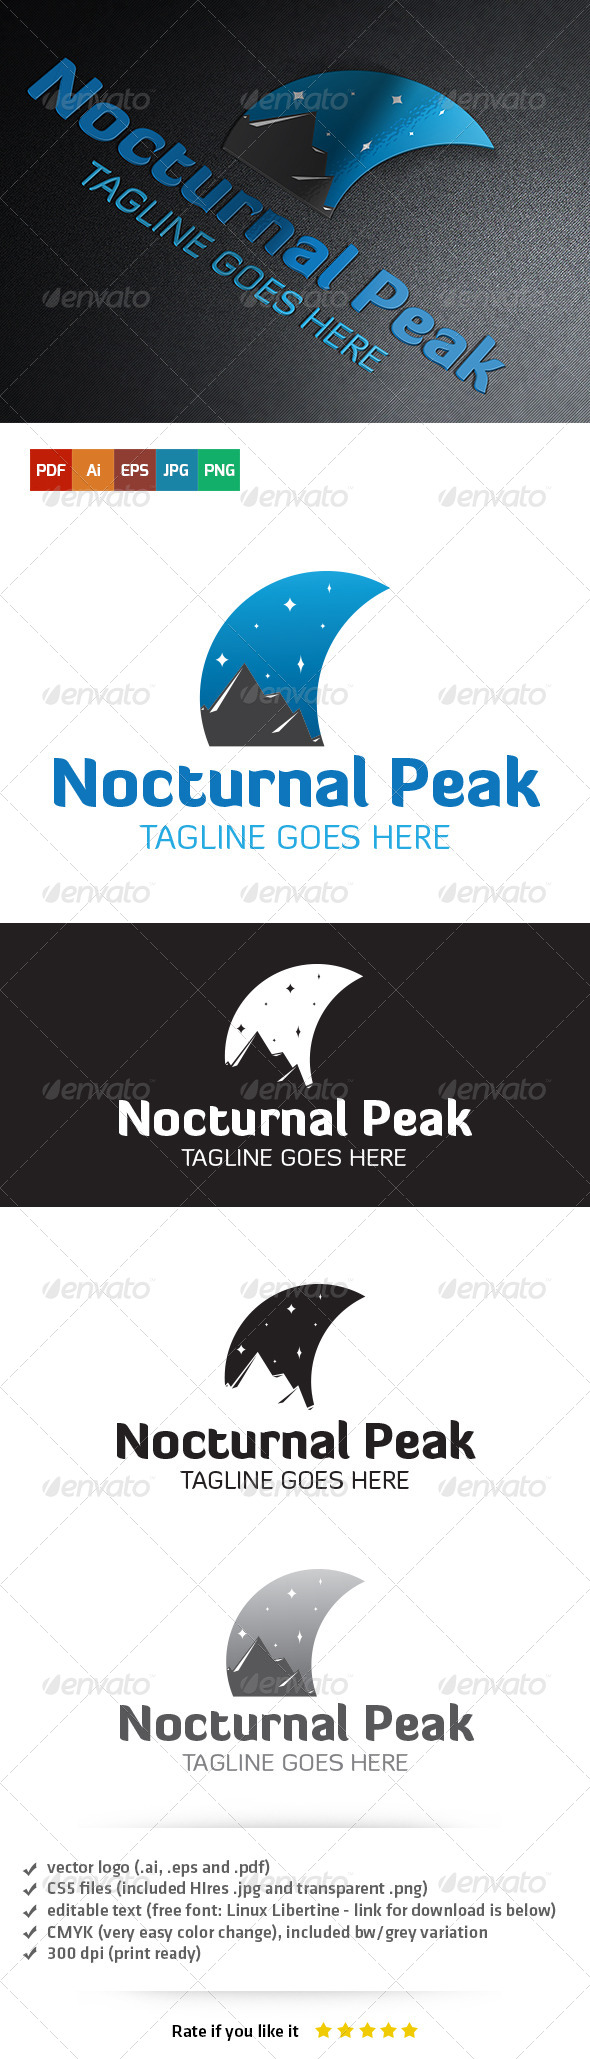 GraphicRiver Nocturnal Peak Logo 5403704